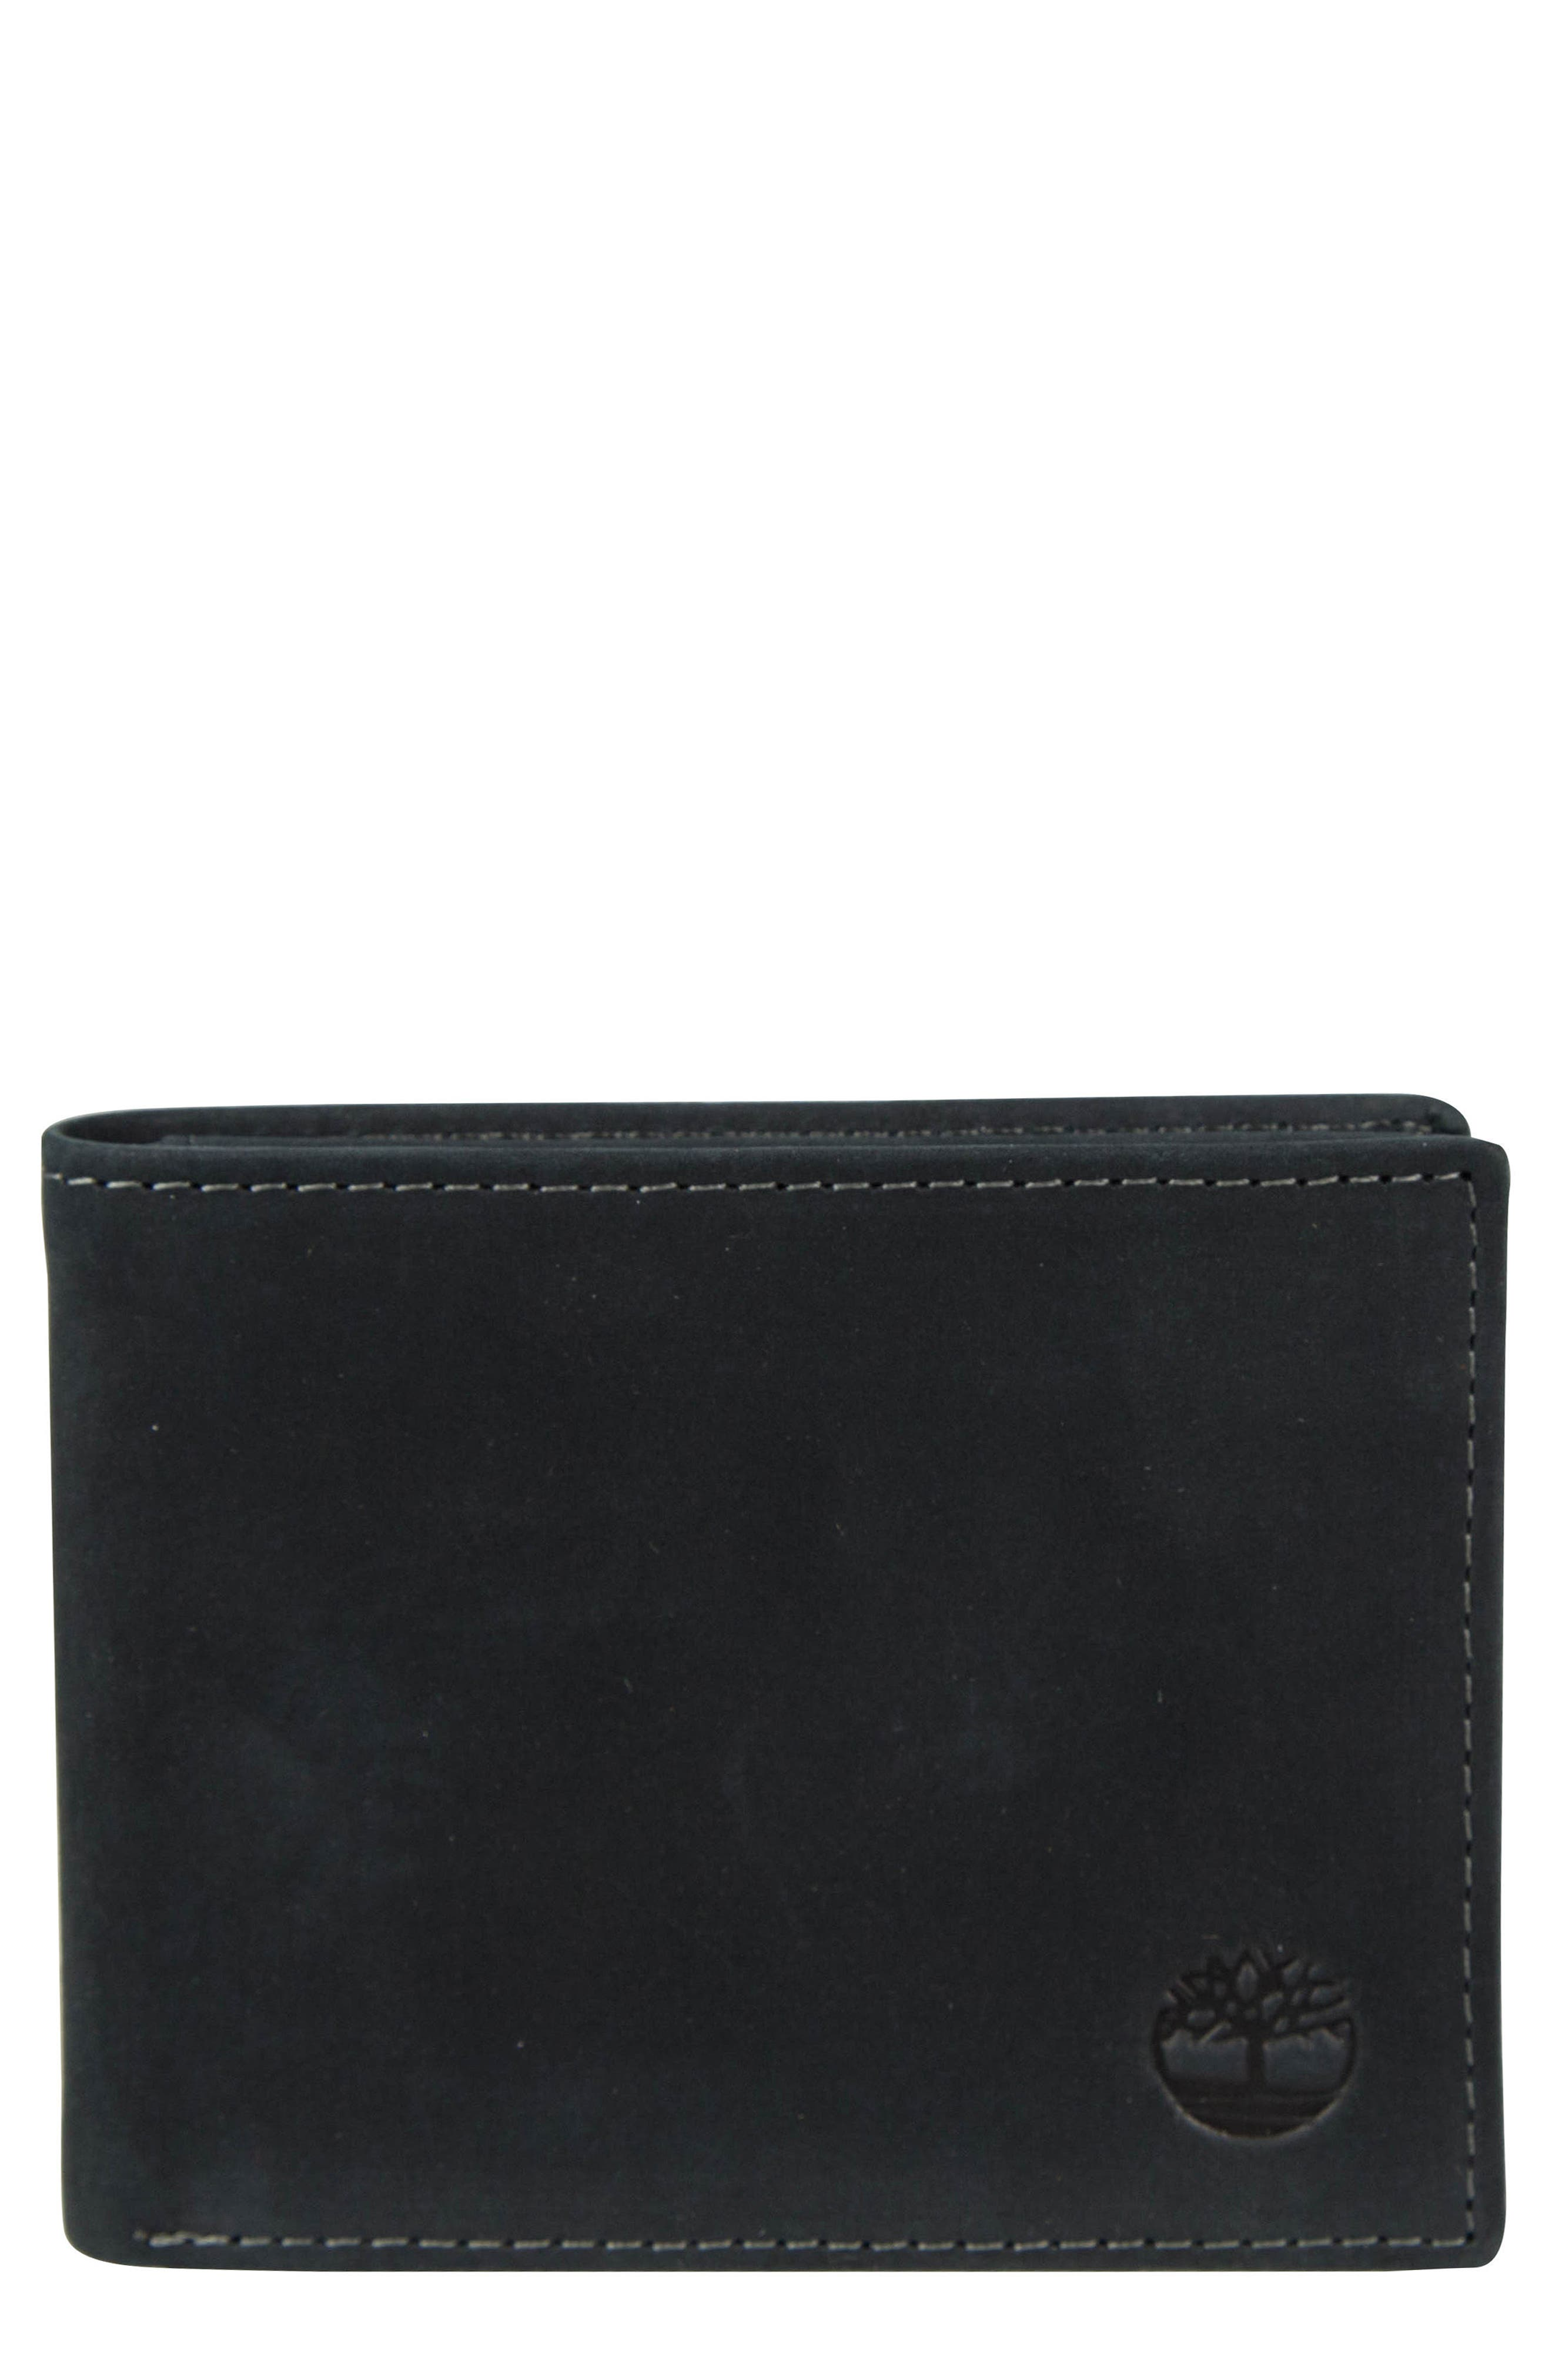 Icon Leather Wallet,                             Main thumbnail 1, color,                             BLACK